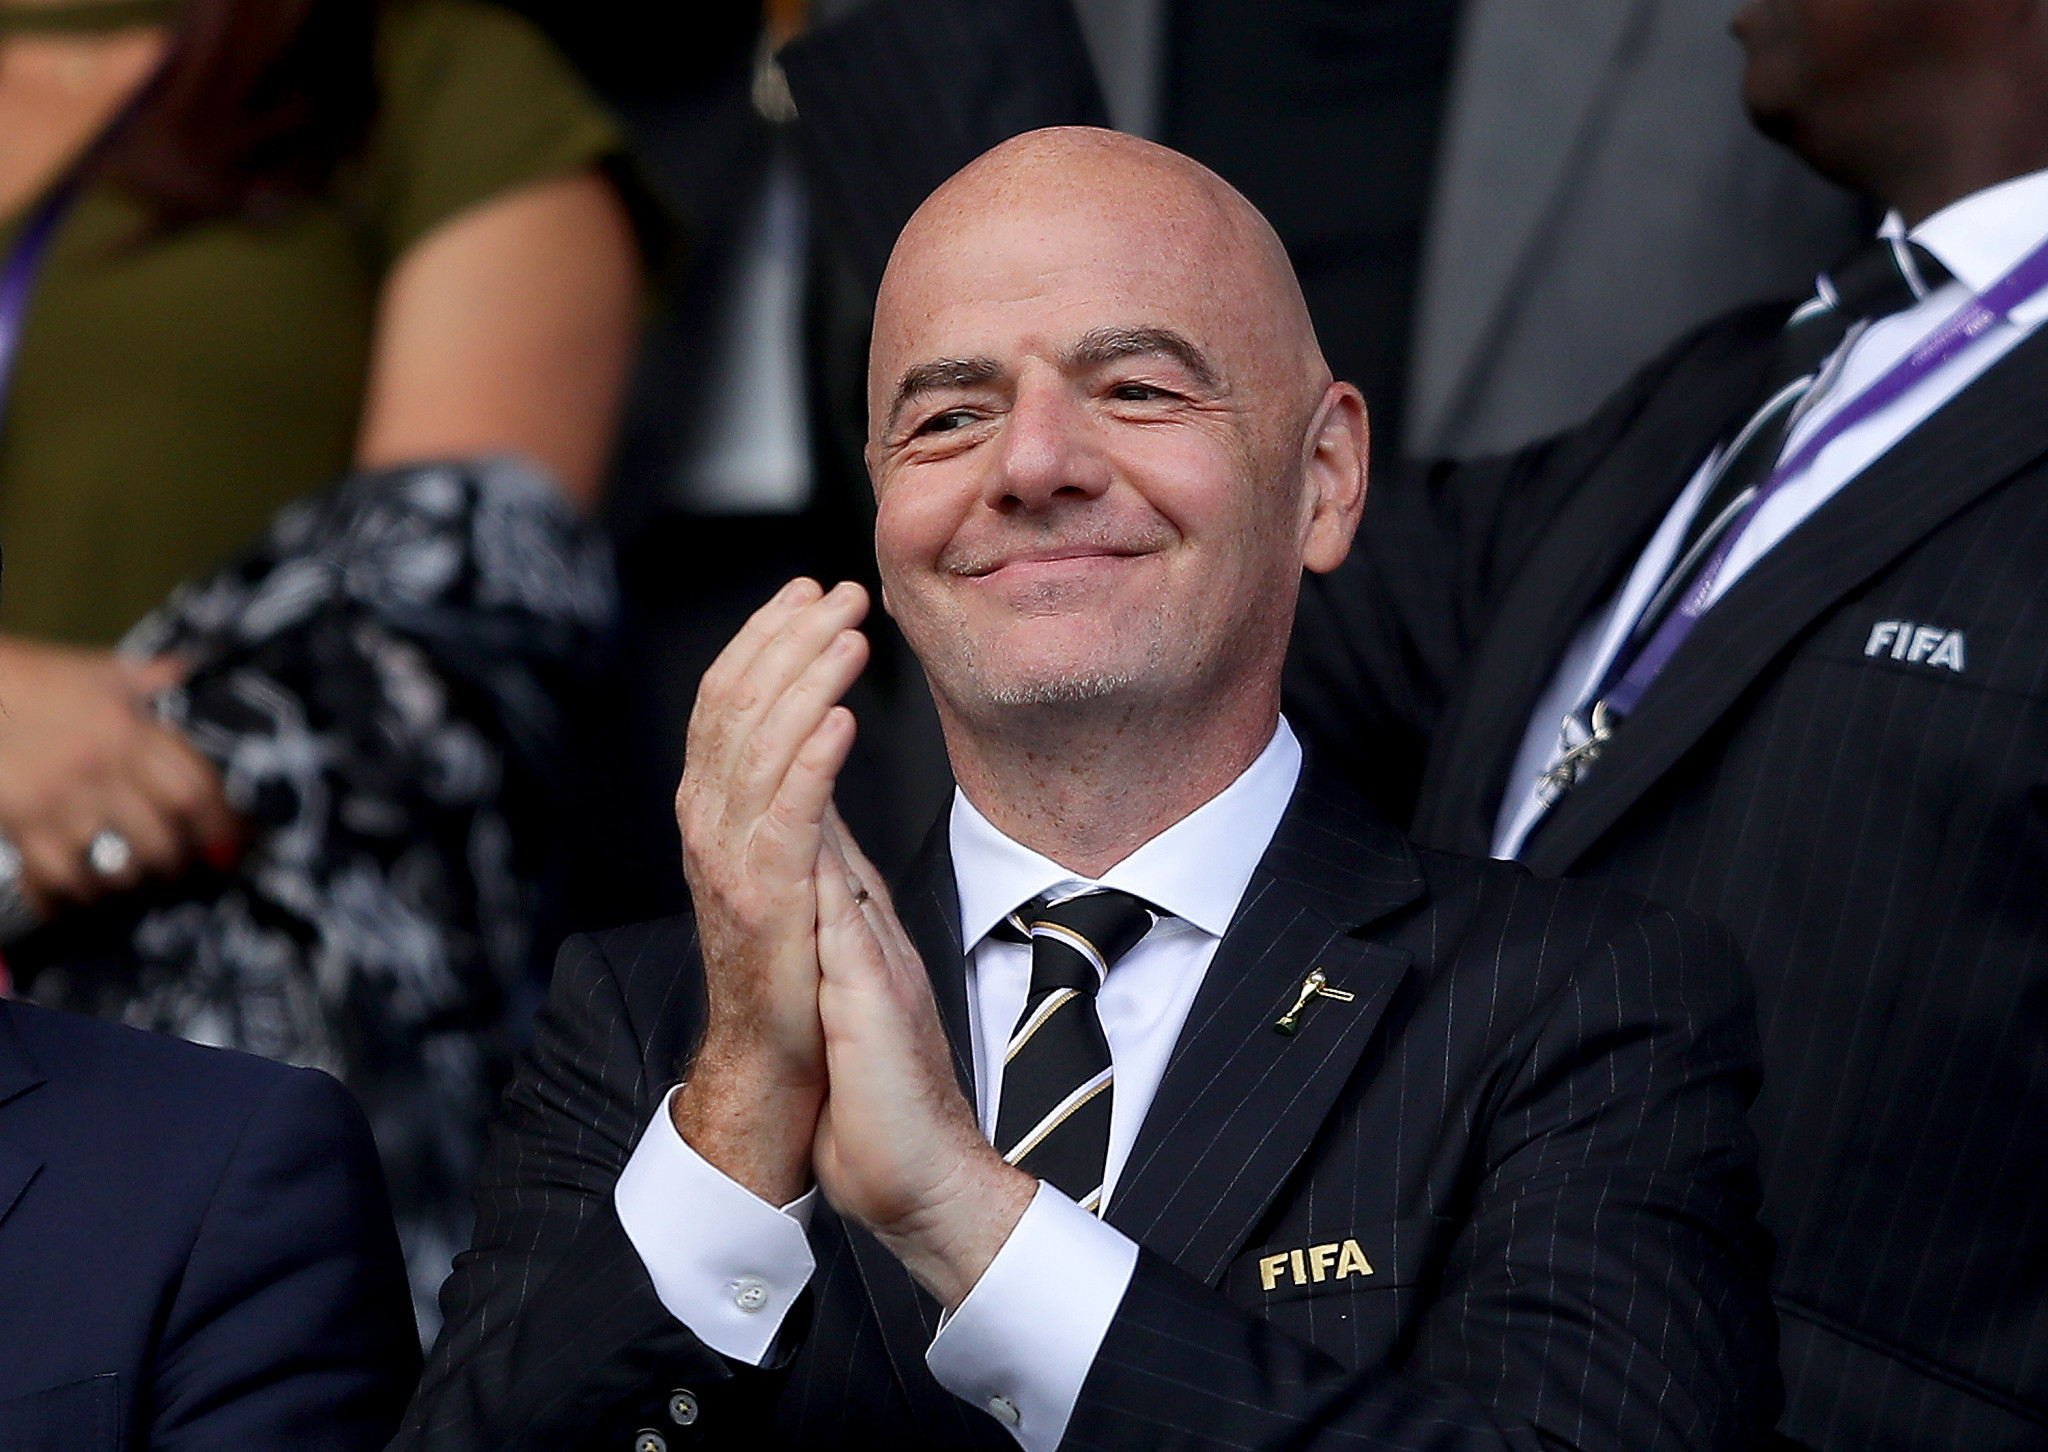 FIFA President vows to boost African football during talks with AU chief